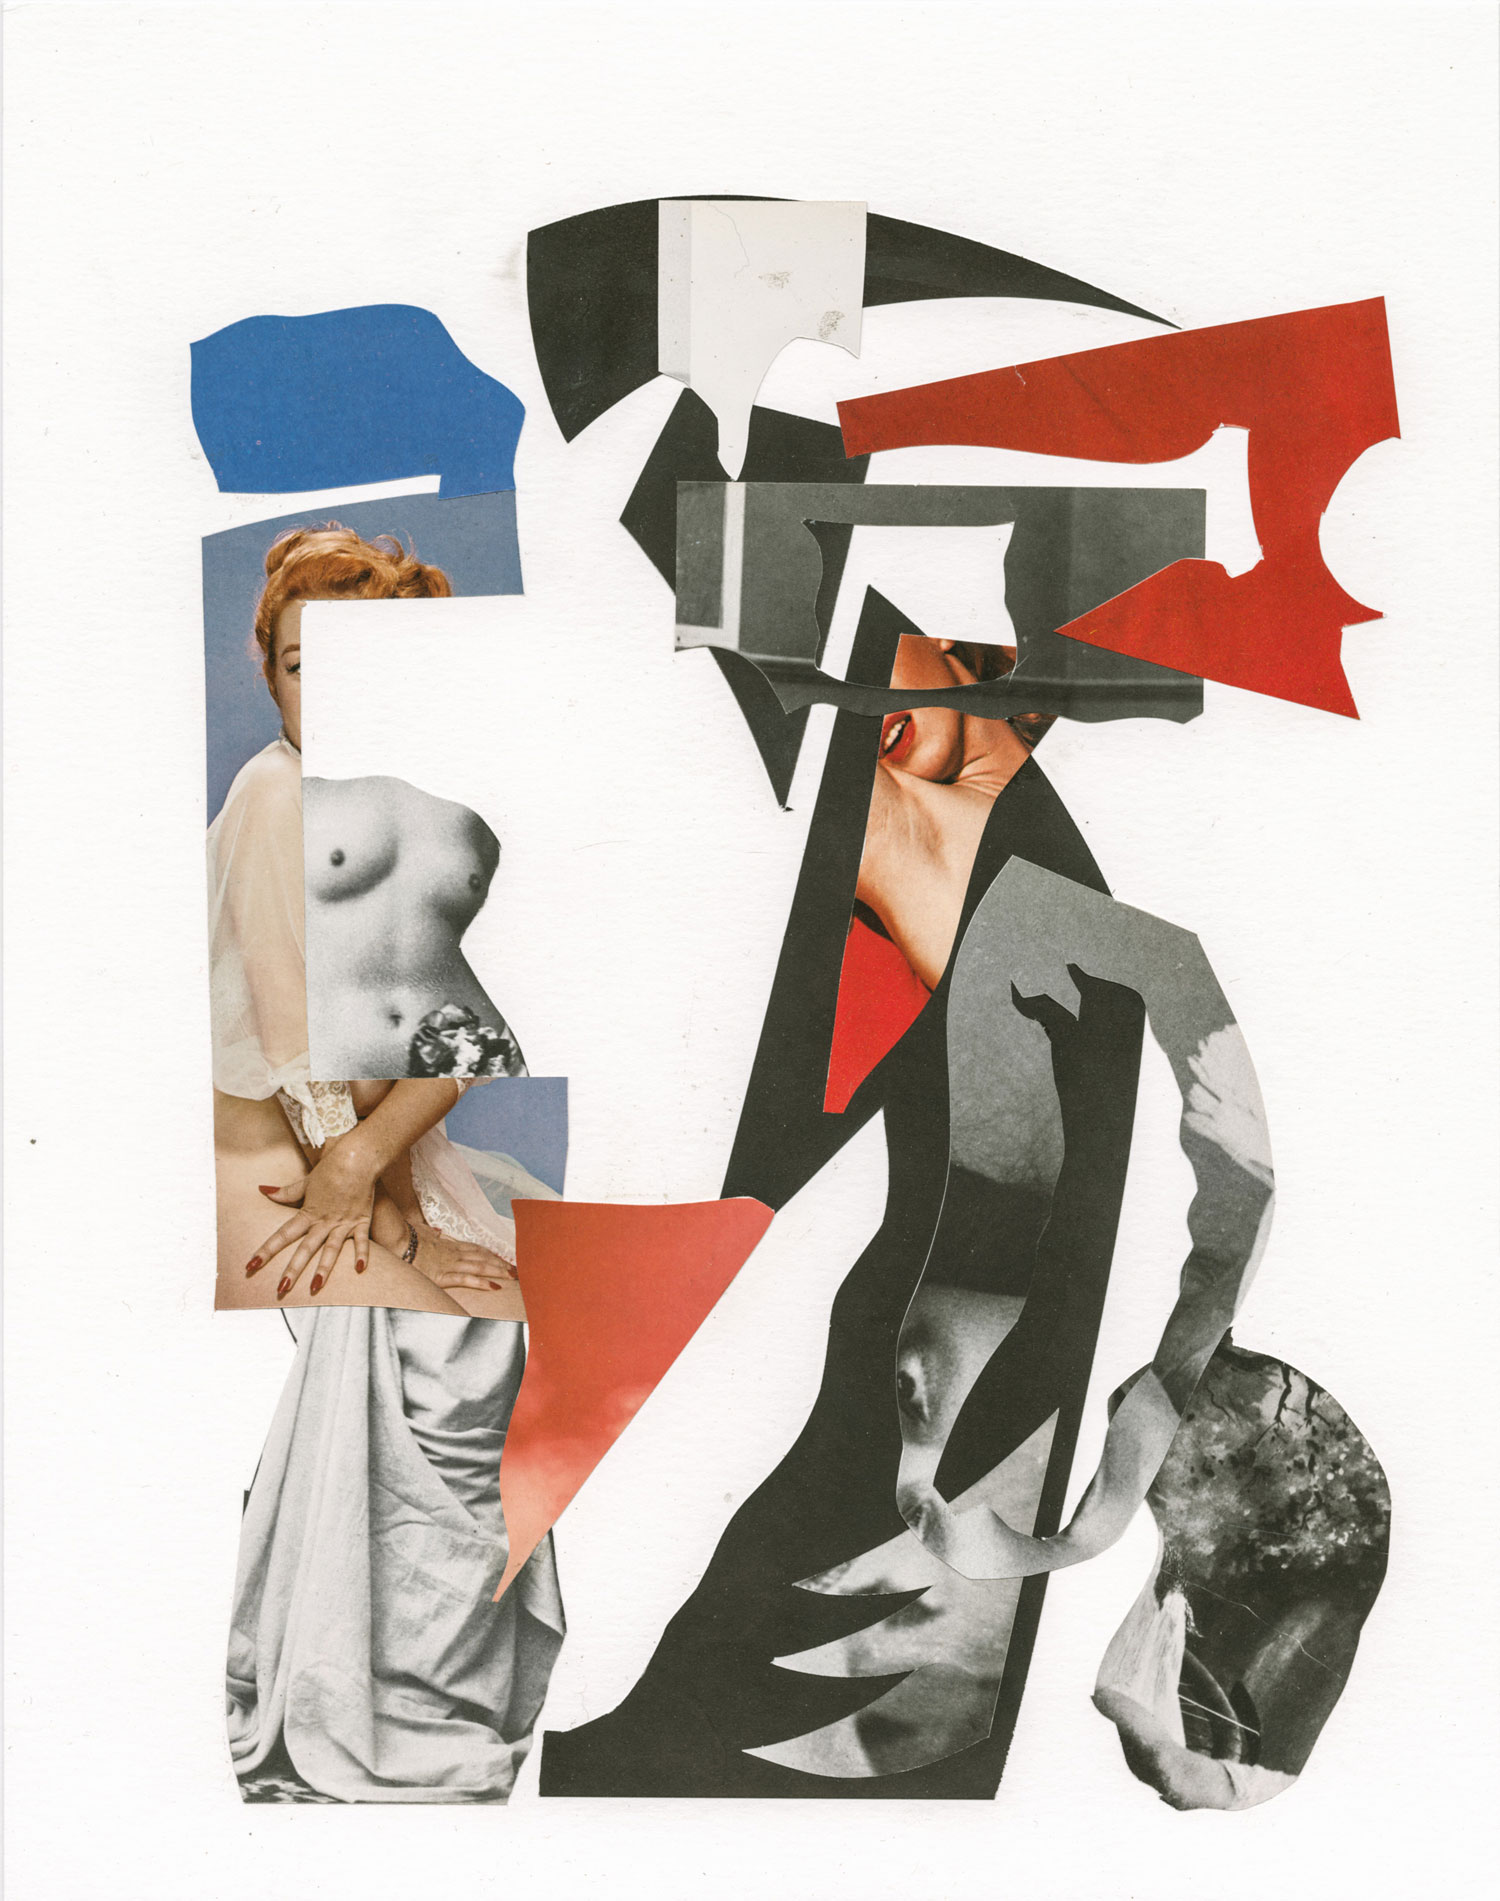 Zoots_Untitled-(Nude-6)_9x12_Collage_600-4.jpg